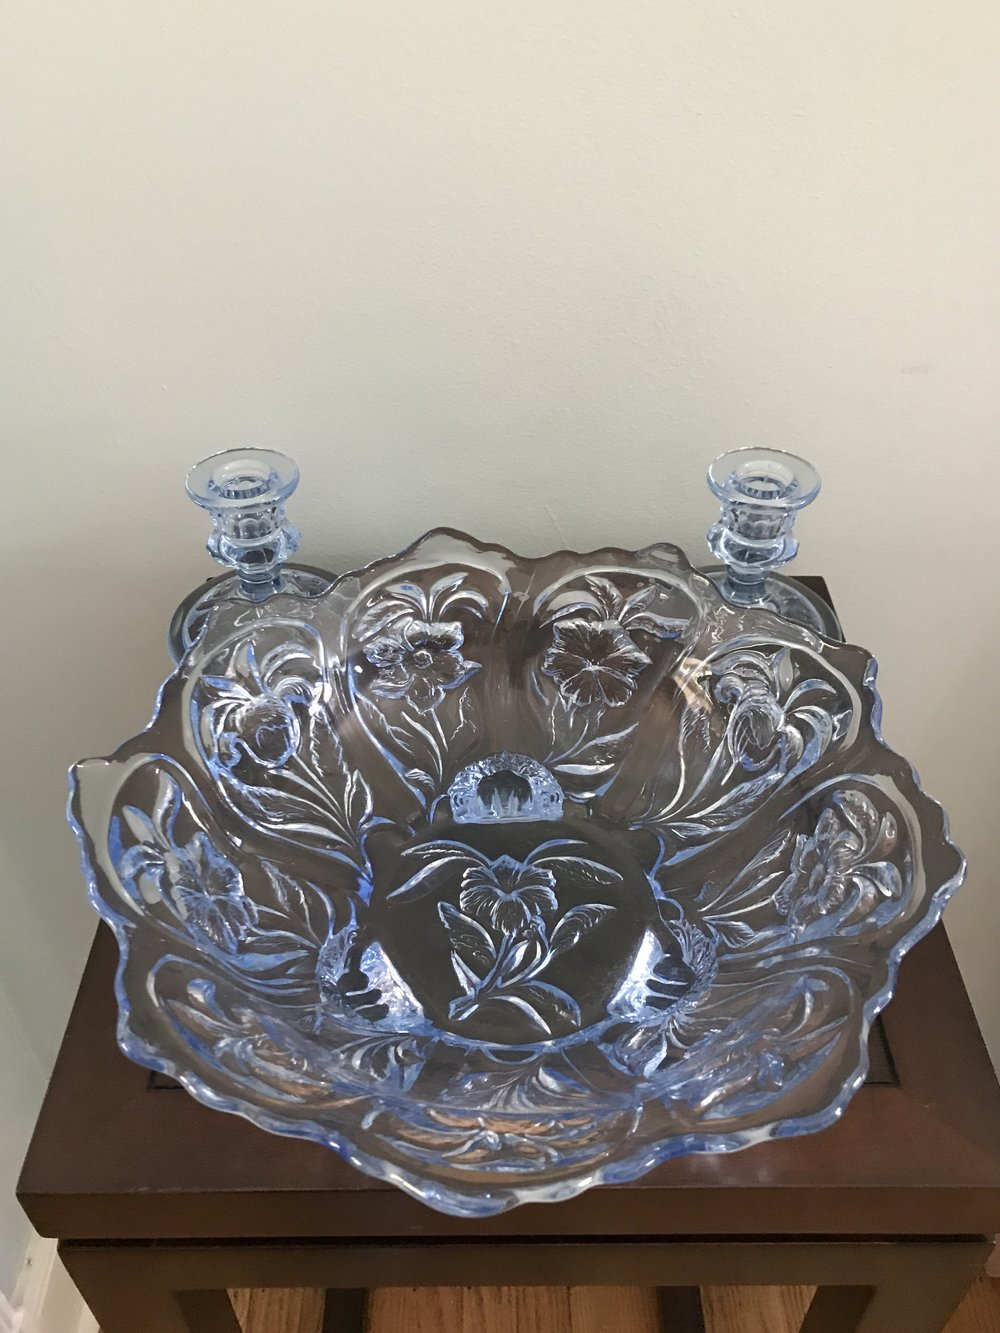 Antique, Depression-Era Blue Glass Bowl and 2 Candle Holders